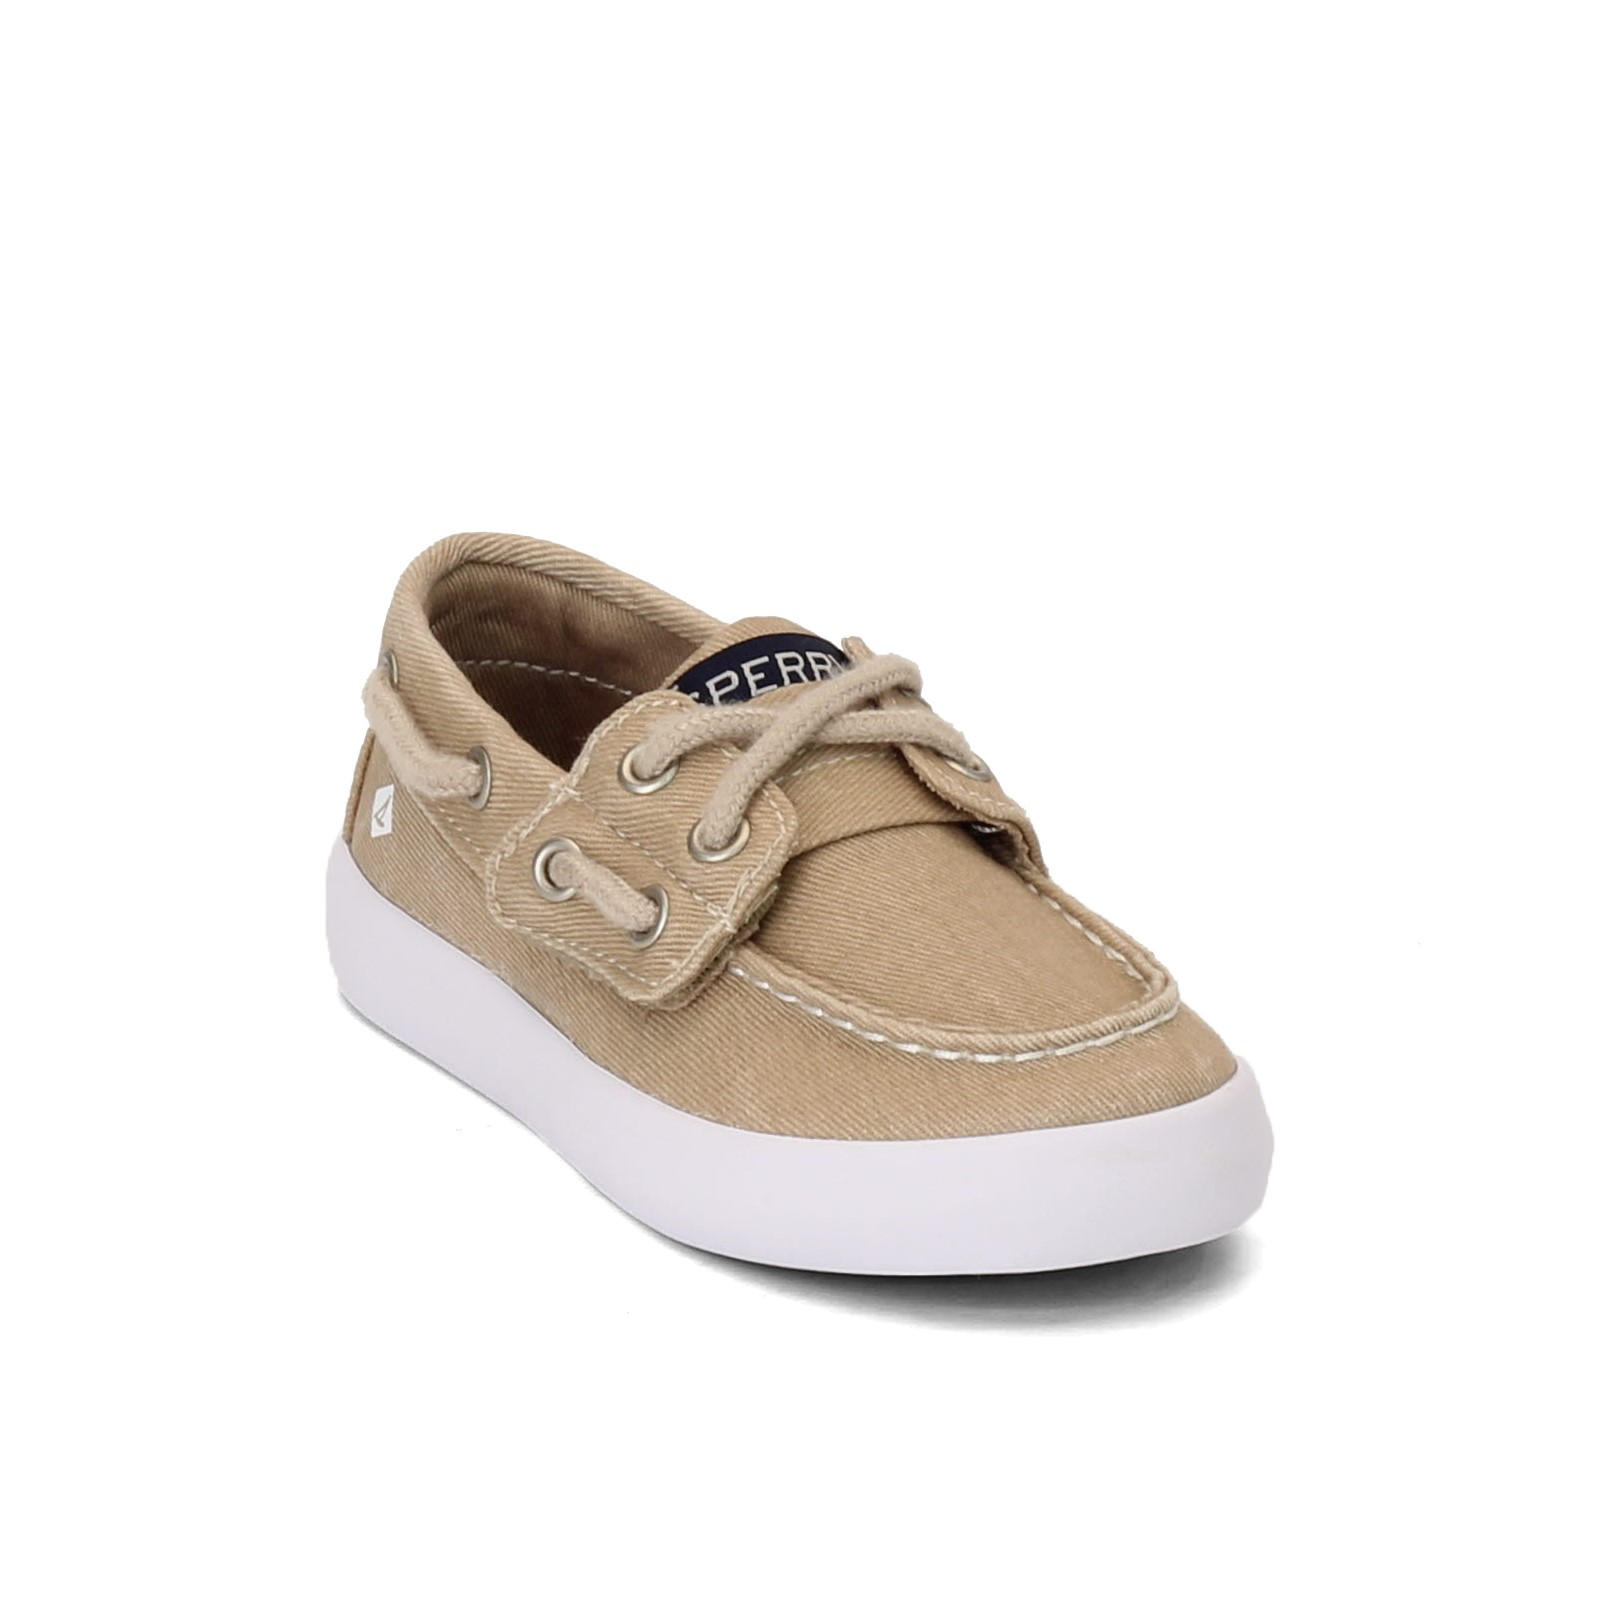 Kid's Sperry, Tuck JR Sneaker - Toddler & Little Kid